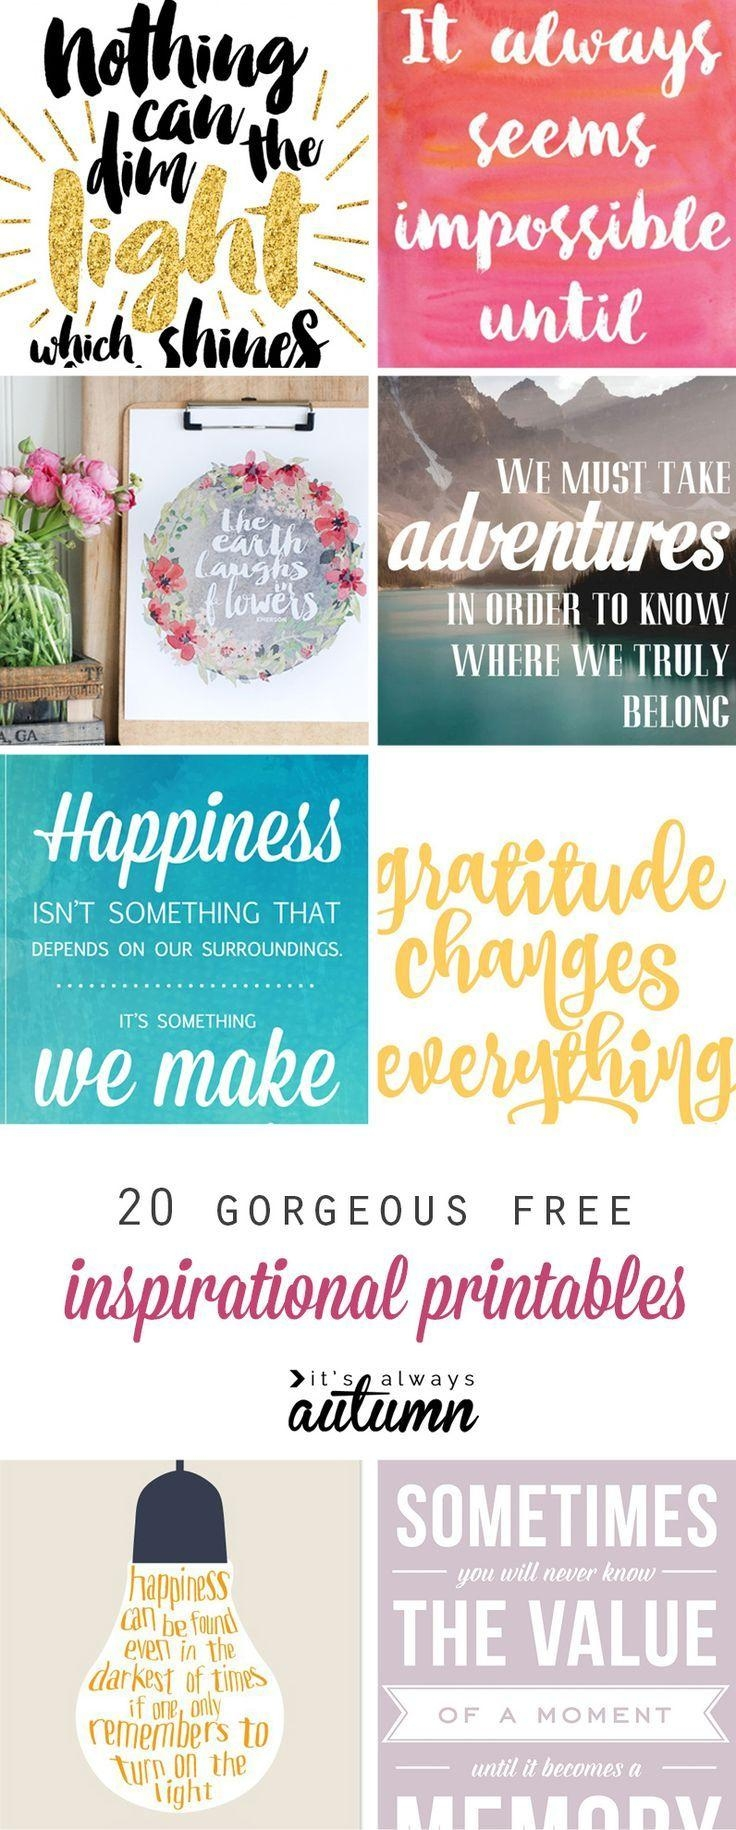 Best 25+ Inspirational Wall Art Ideas On Pinterest | Free With Regard To Large Inspirational Wall Art (Image 4 of 20)